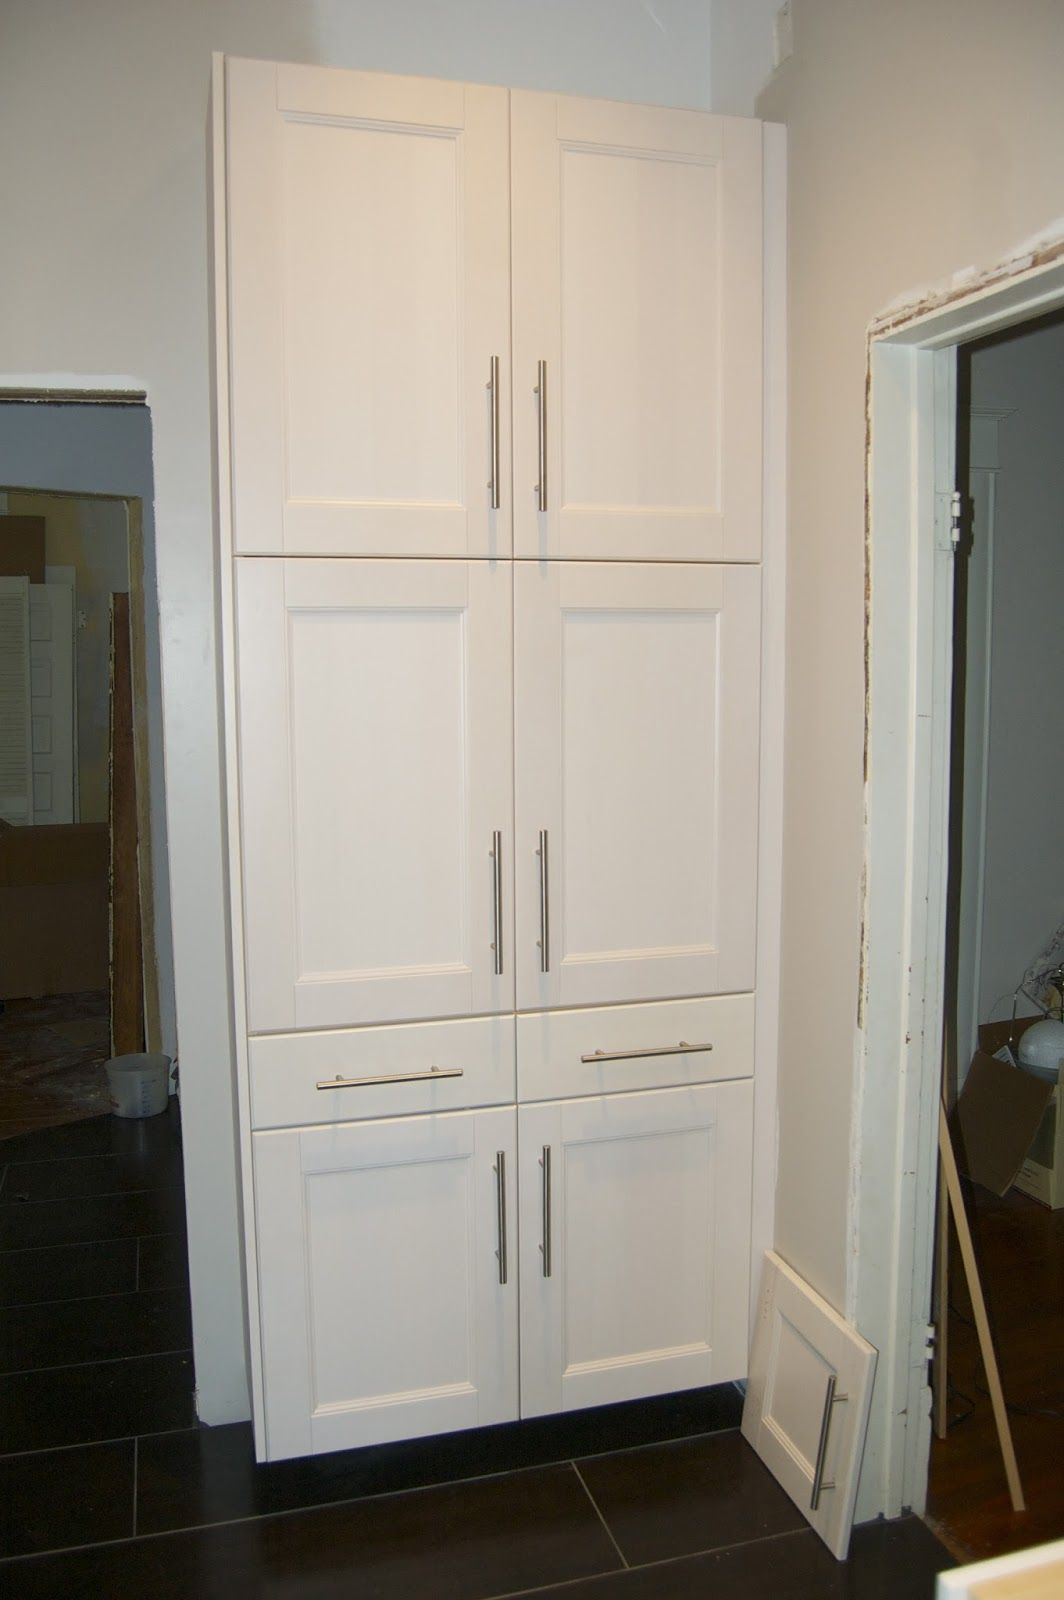 Tall White Kitchen Pantry Cabinet1 Kitchen Pantry Storage Cabinet Tall Kitchen Pantry Cabinet Ikea Kitchen Storage Cabinets